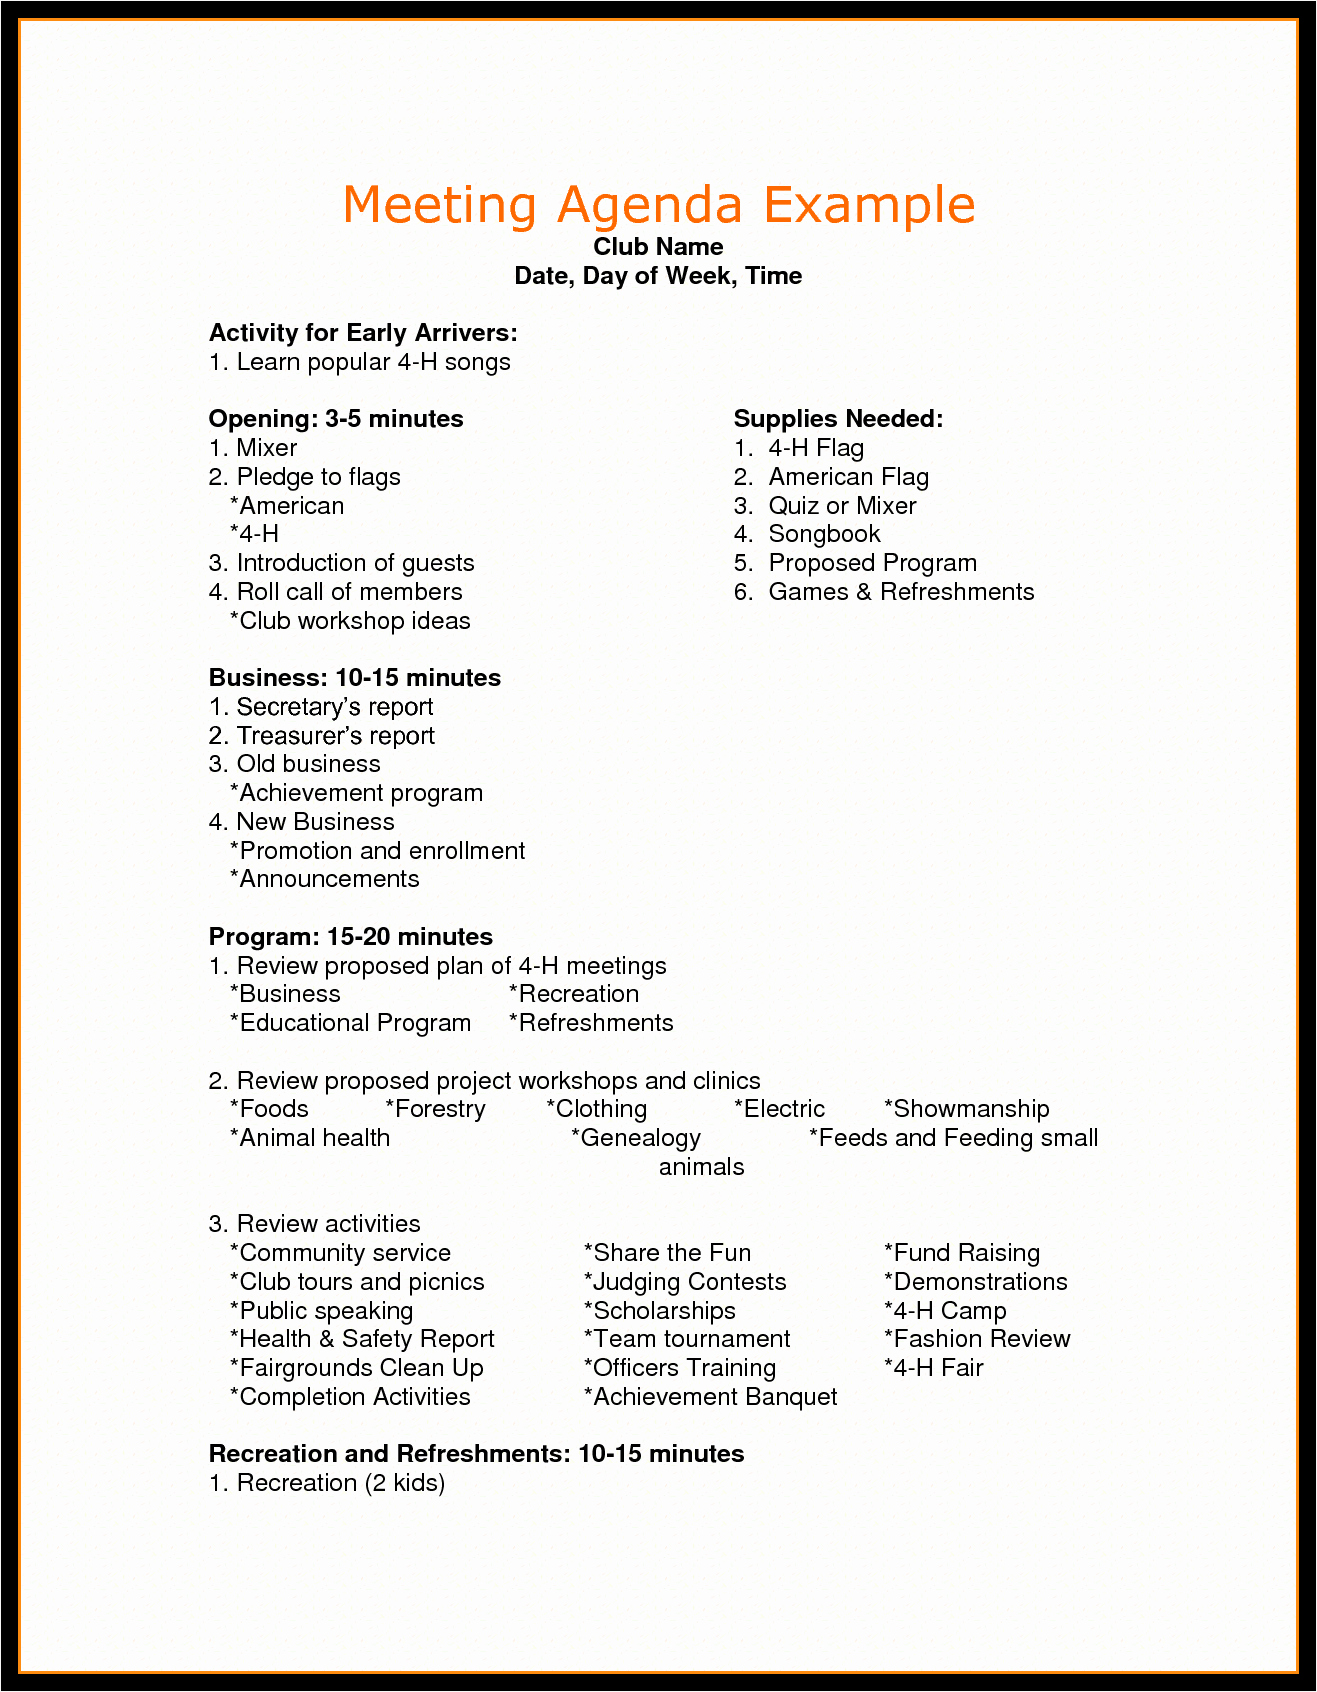 Agenda Sample for Business Meeting Luxury Agenda for Meeting Example Mughals